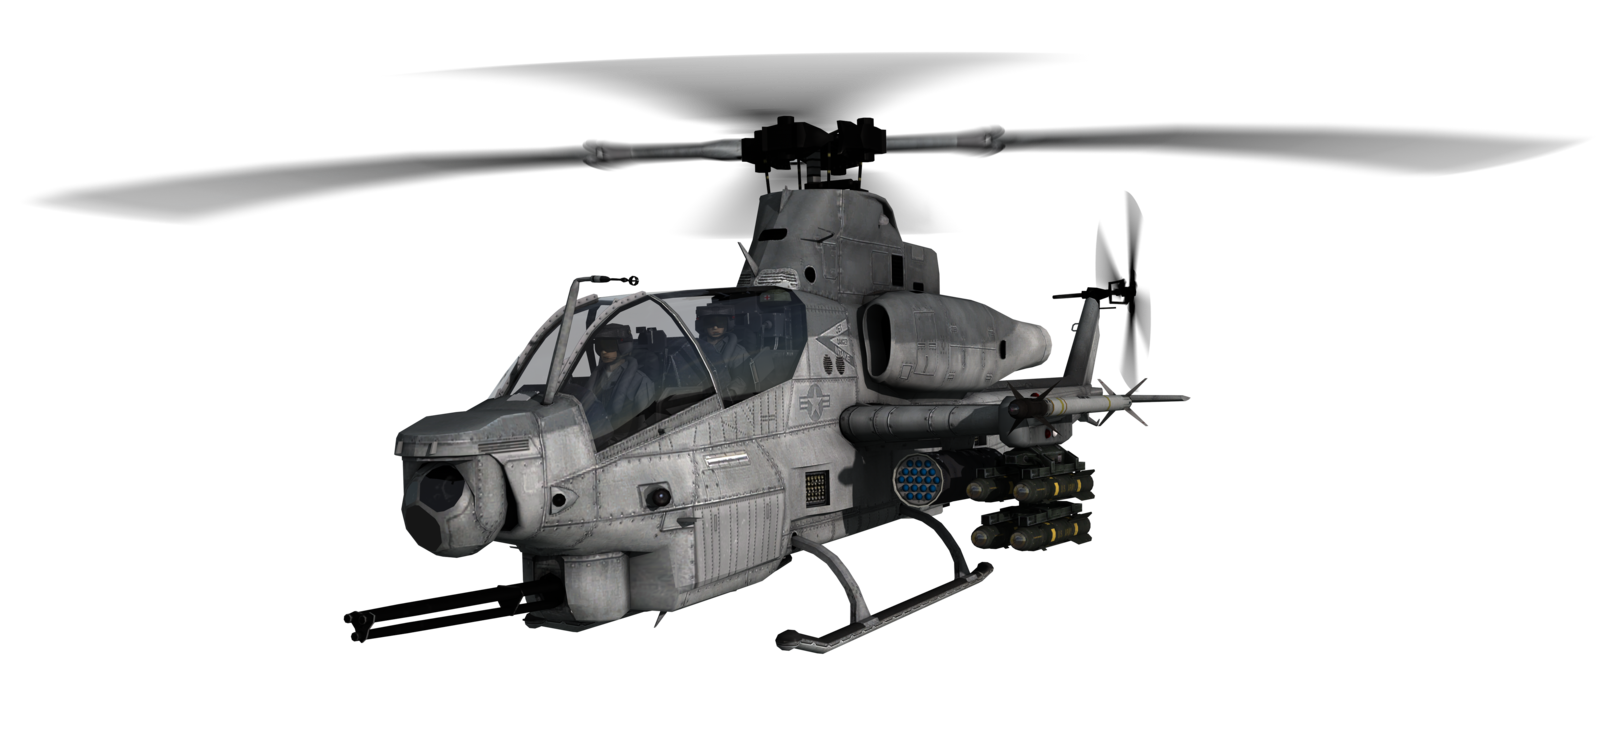 Apache helicopter png. Helicopters image free download